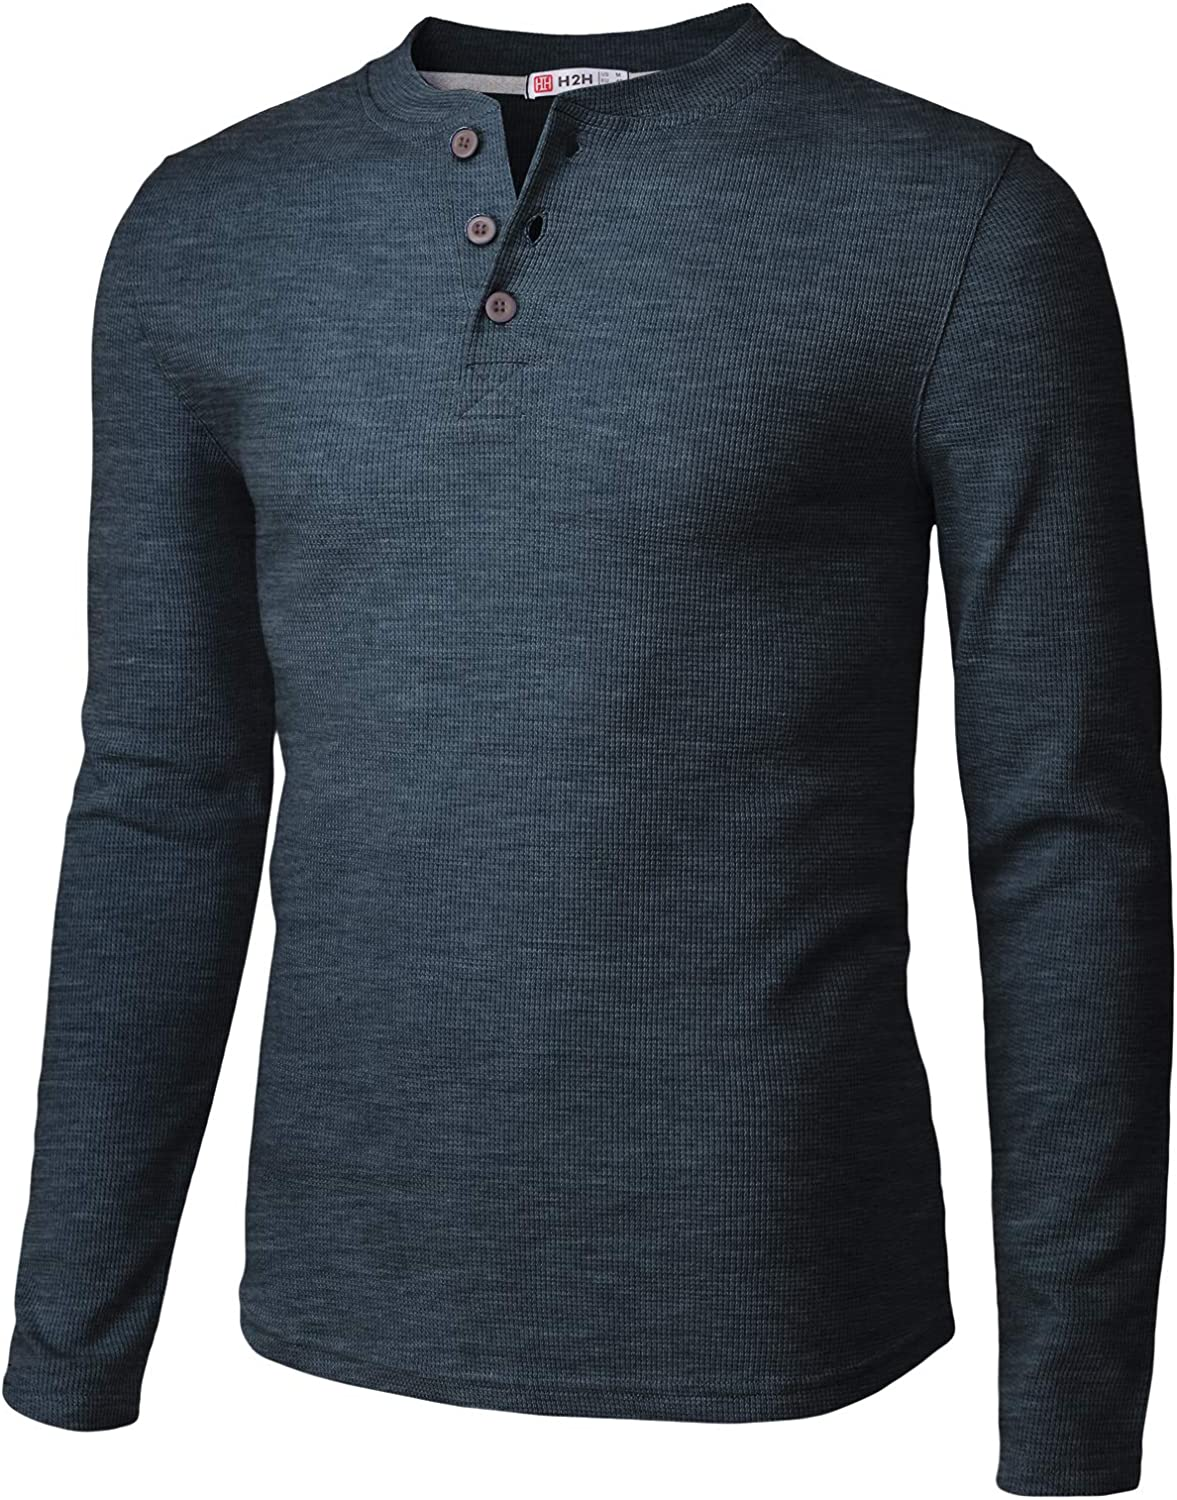 H2H Mens Casual Slim Fit Henley Long Sleeve T Shirts of Waffle Cotton